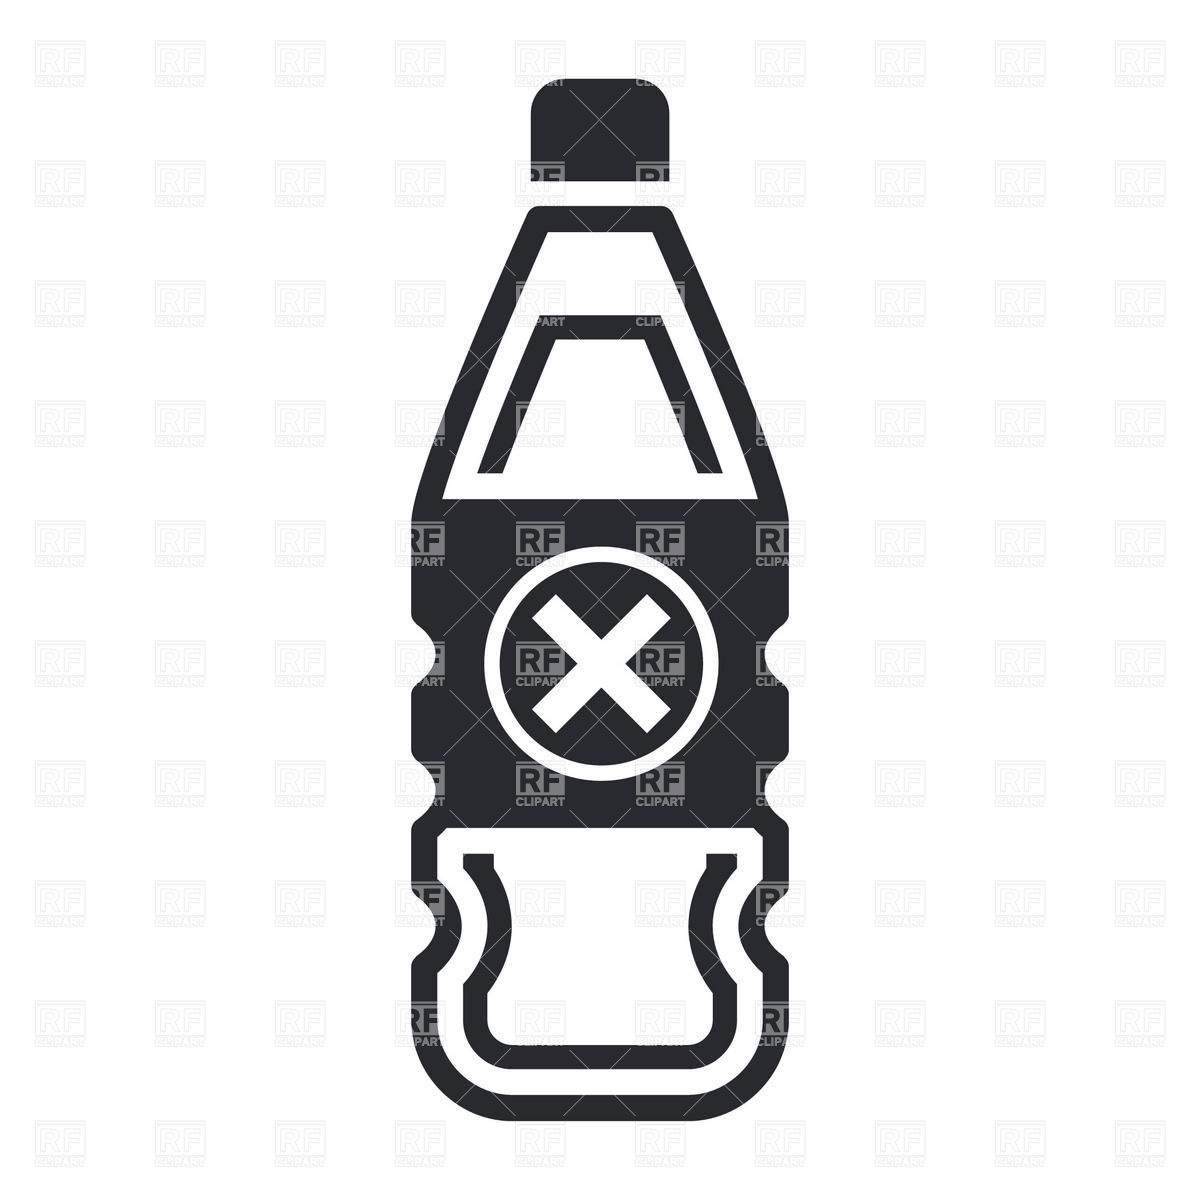 1200x1200 Icon Of Plastic Bottle With Poison Or Dangerous Liquid Royalty